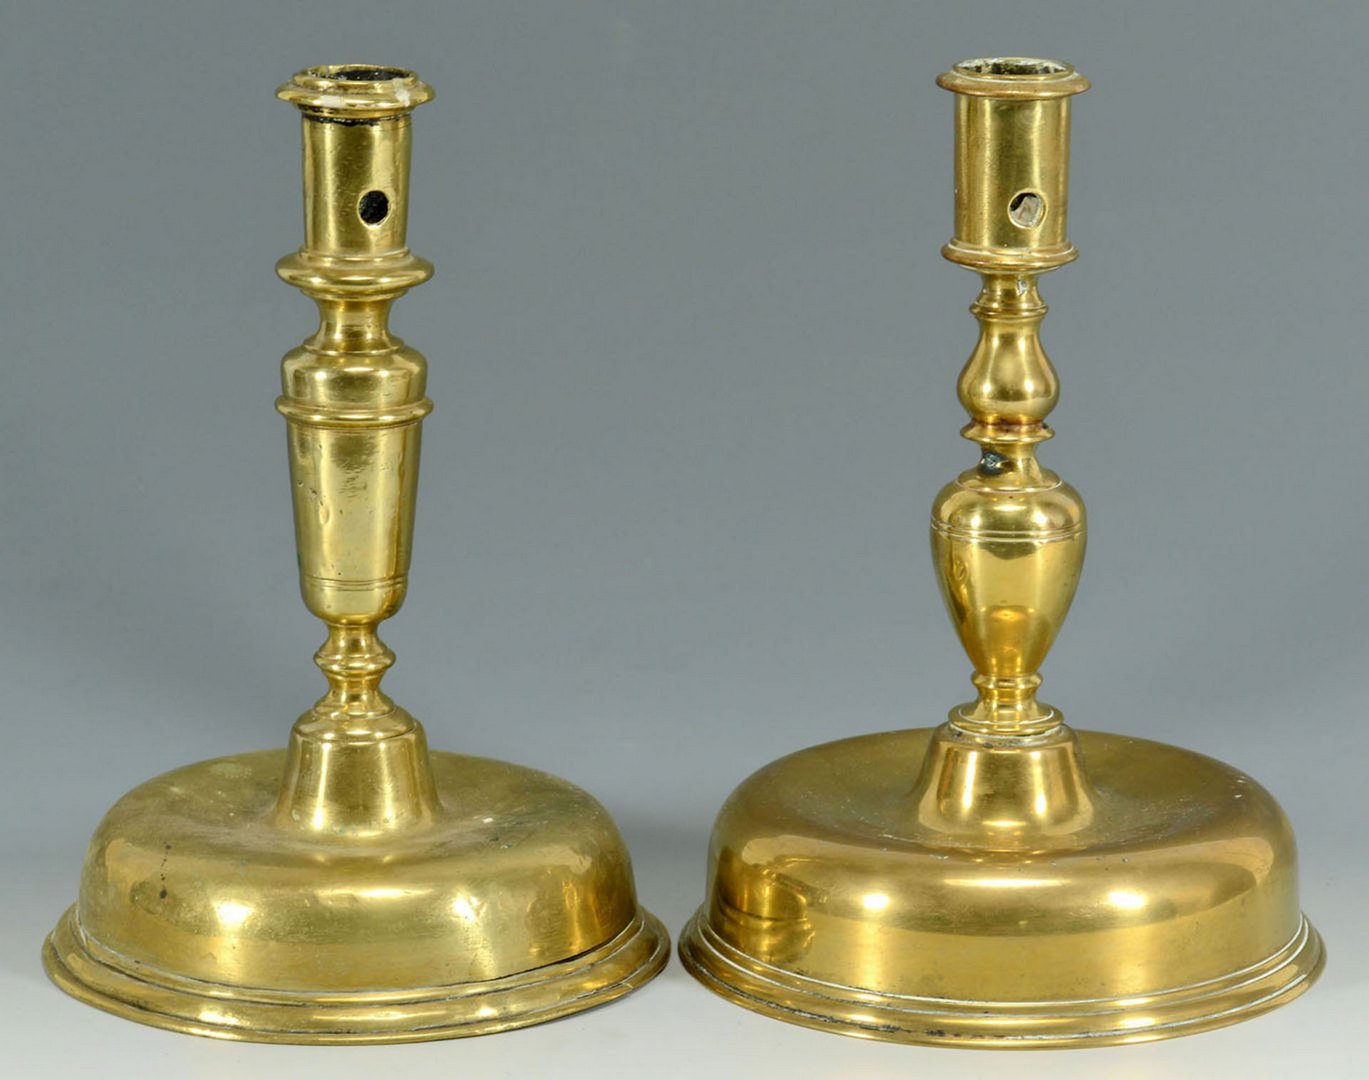 Lot 91: Four 17th century Brass Candlesticks